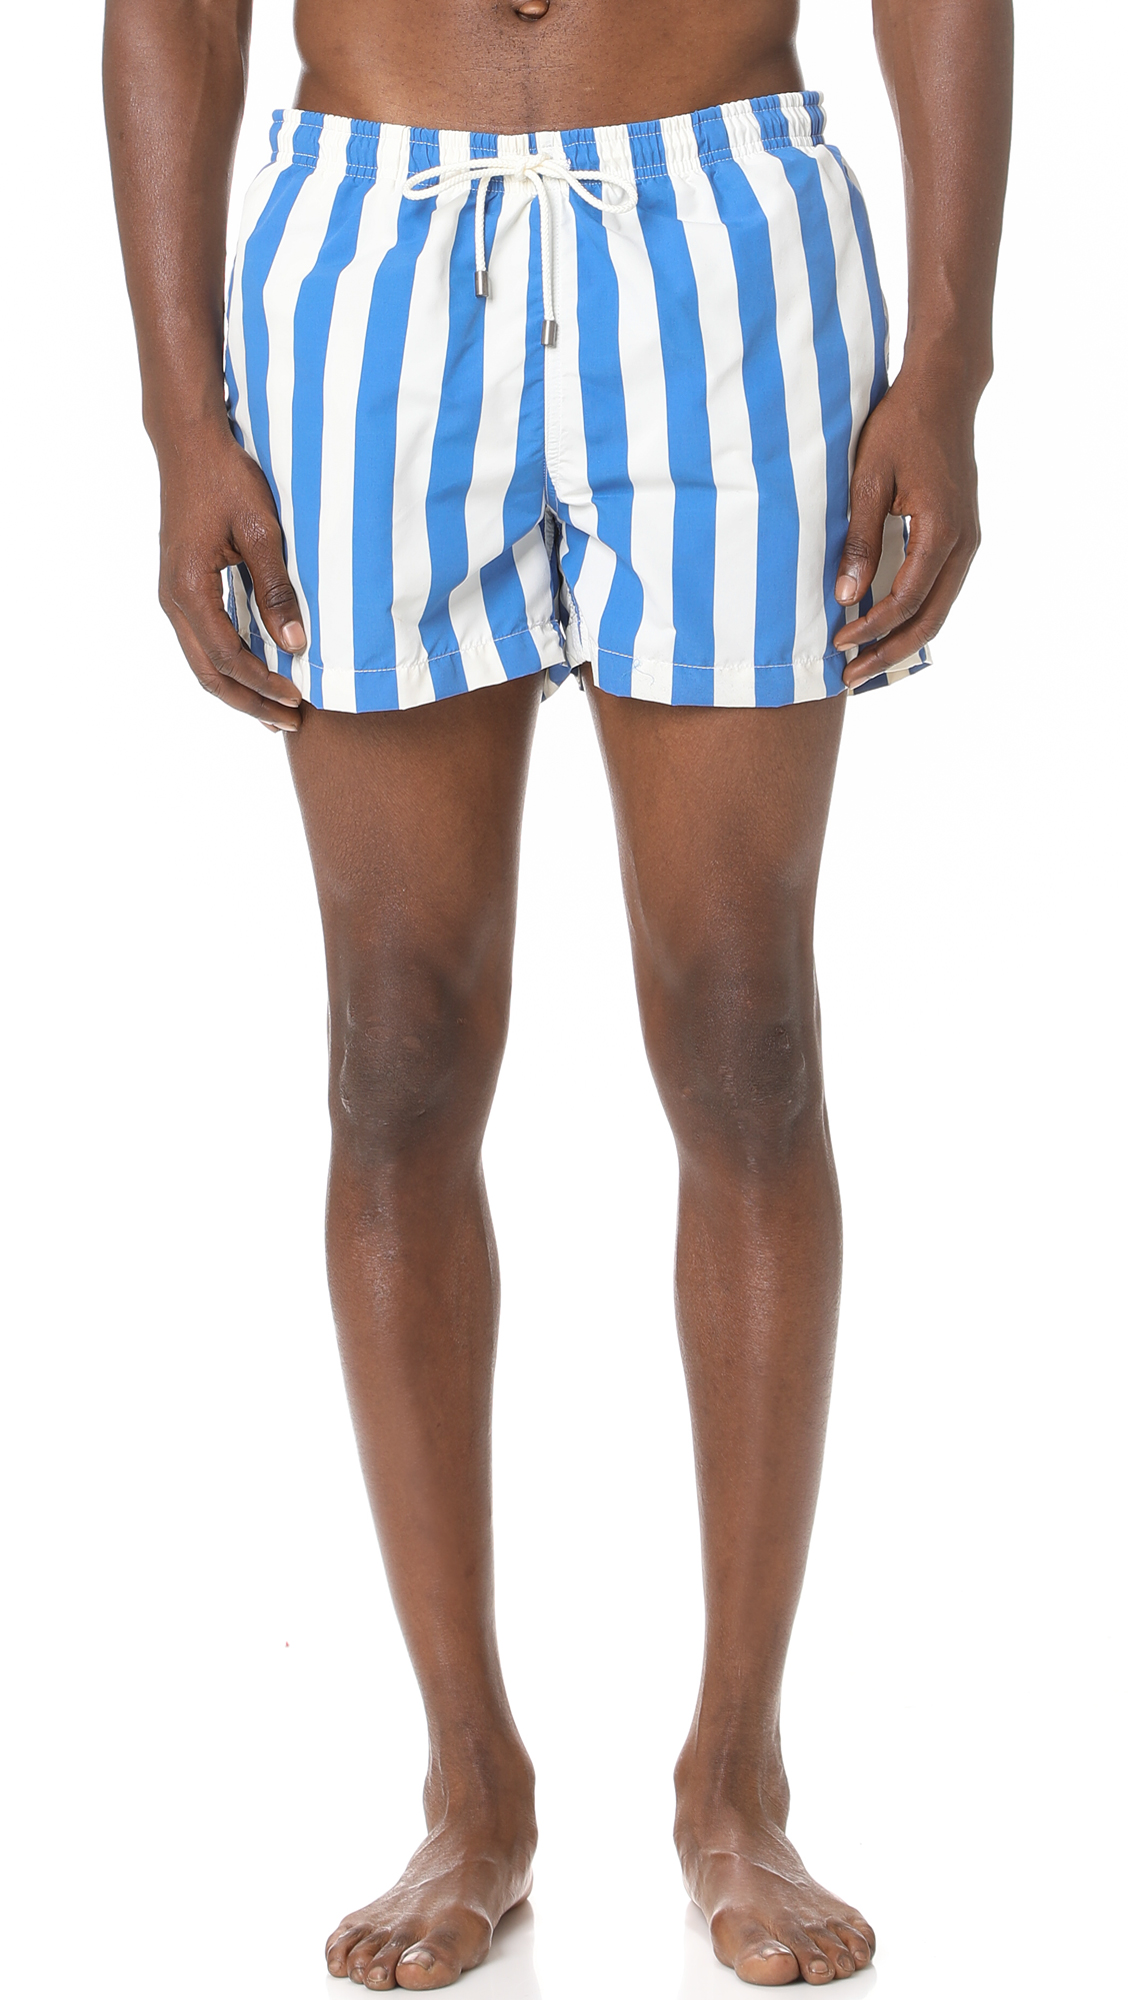 Solid & Striped The Classic Las Brisas Trunks In Royal Stripe